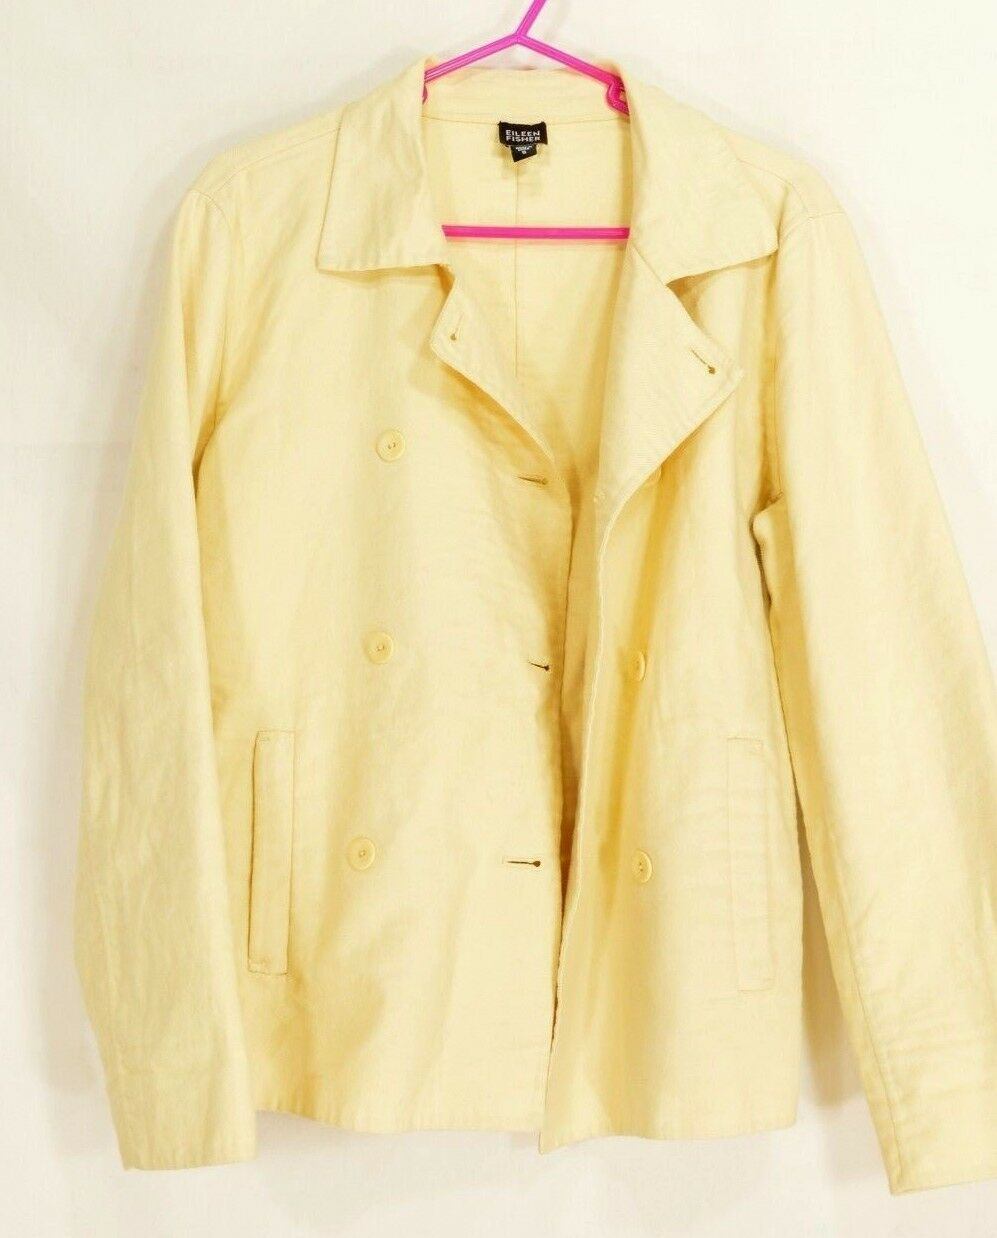 Eileen Fisher jacket SZ S yellow cotton blend stretch double breasted tailored